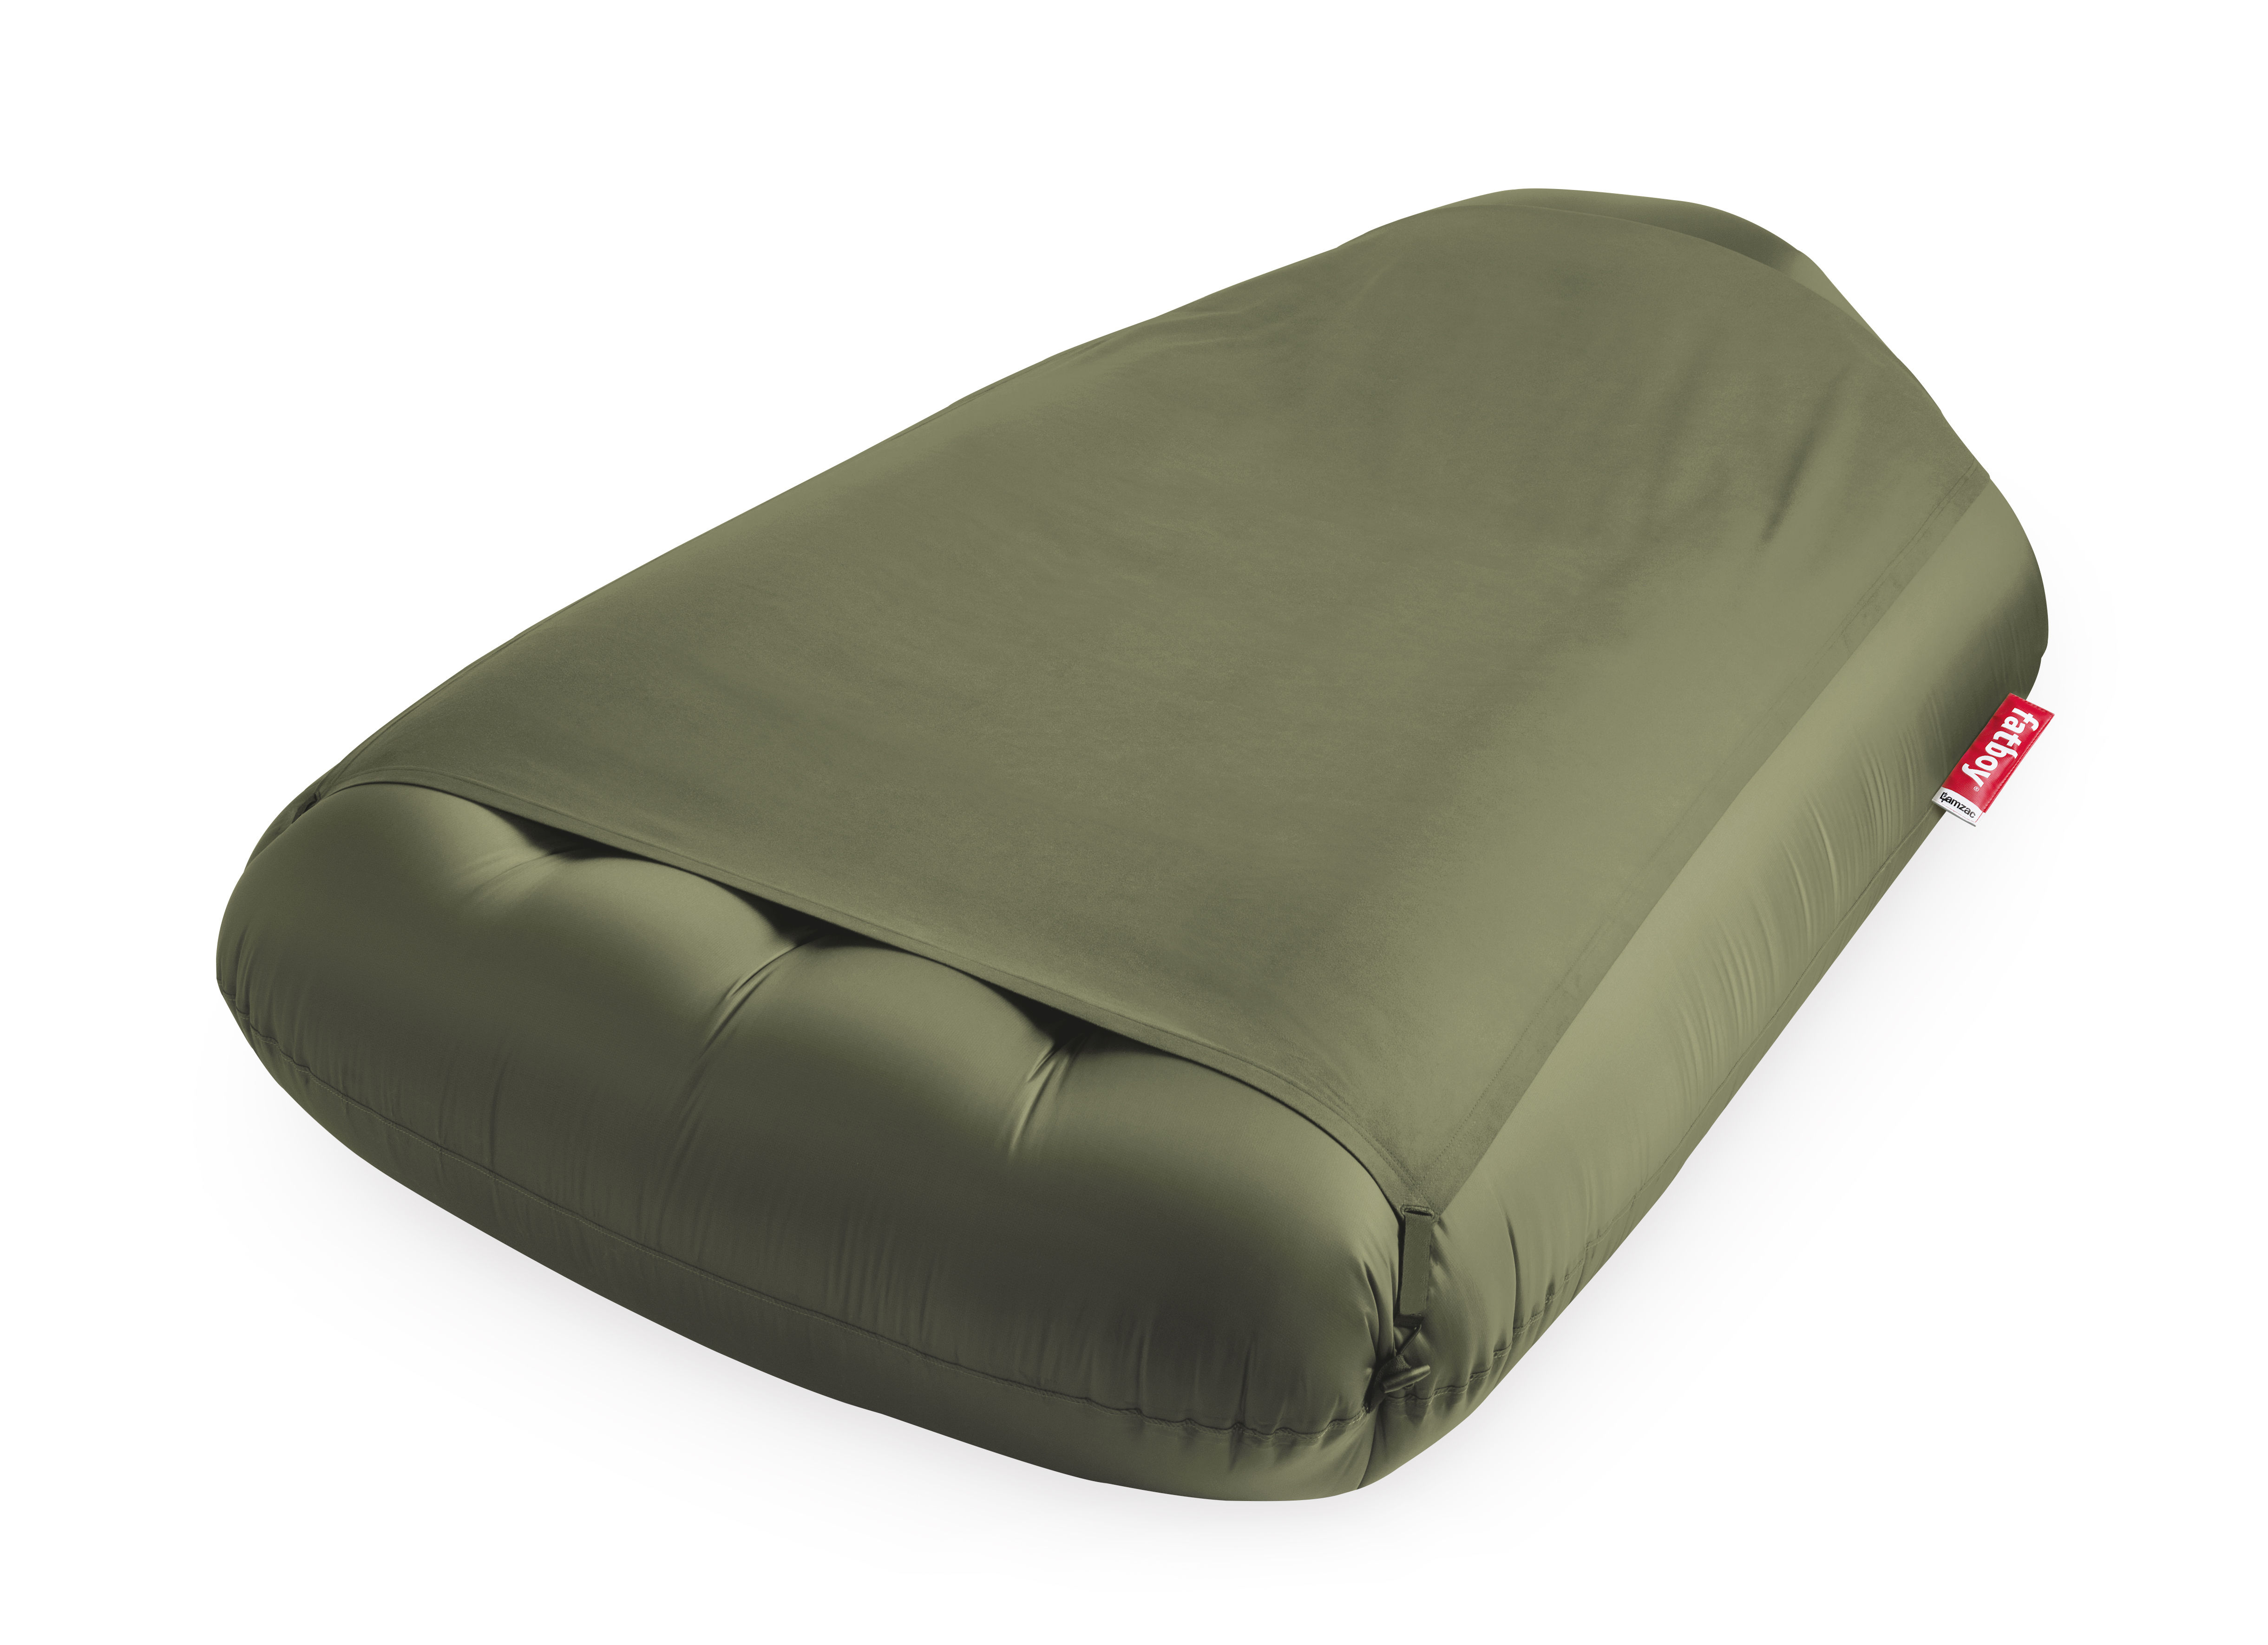 Furniture - Poufs & Floor Cushions - Lamzac L Deluxe Air mattress - / Limited edition - L 195 x W 112 cm by Fatboy - Olive green - Nylon, Polyester